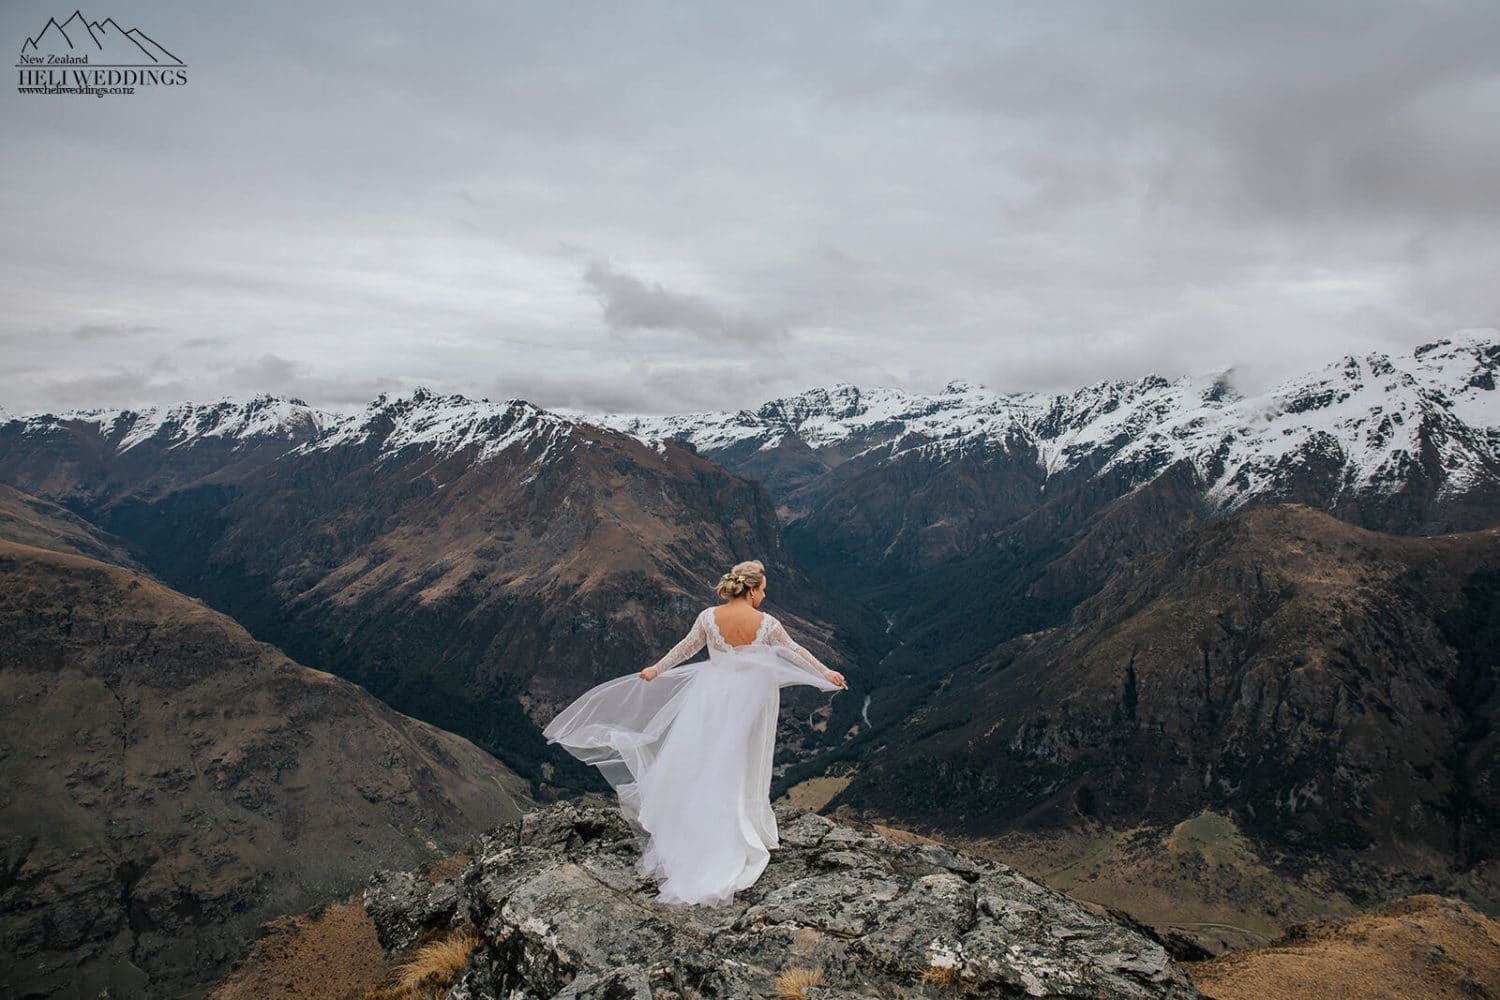 Elopement Wedding Package in Queenstown New Zealand